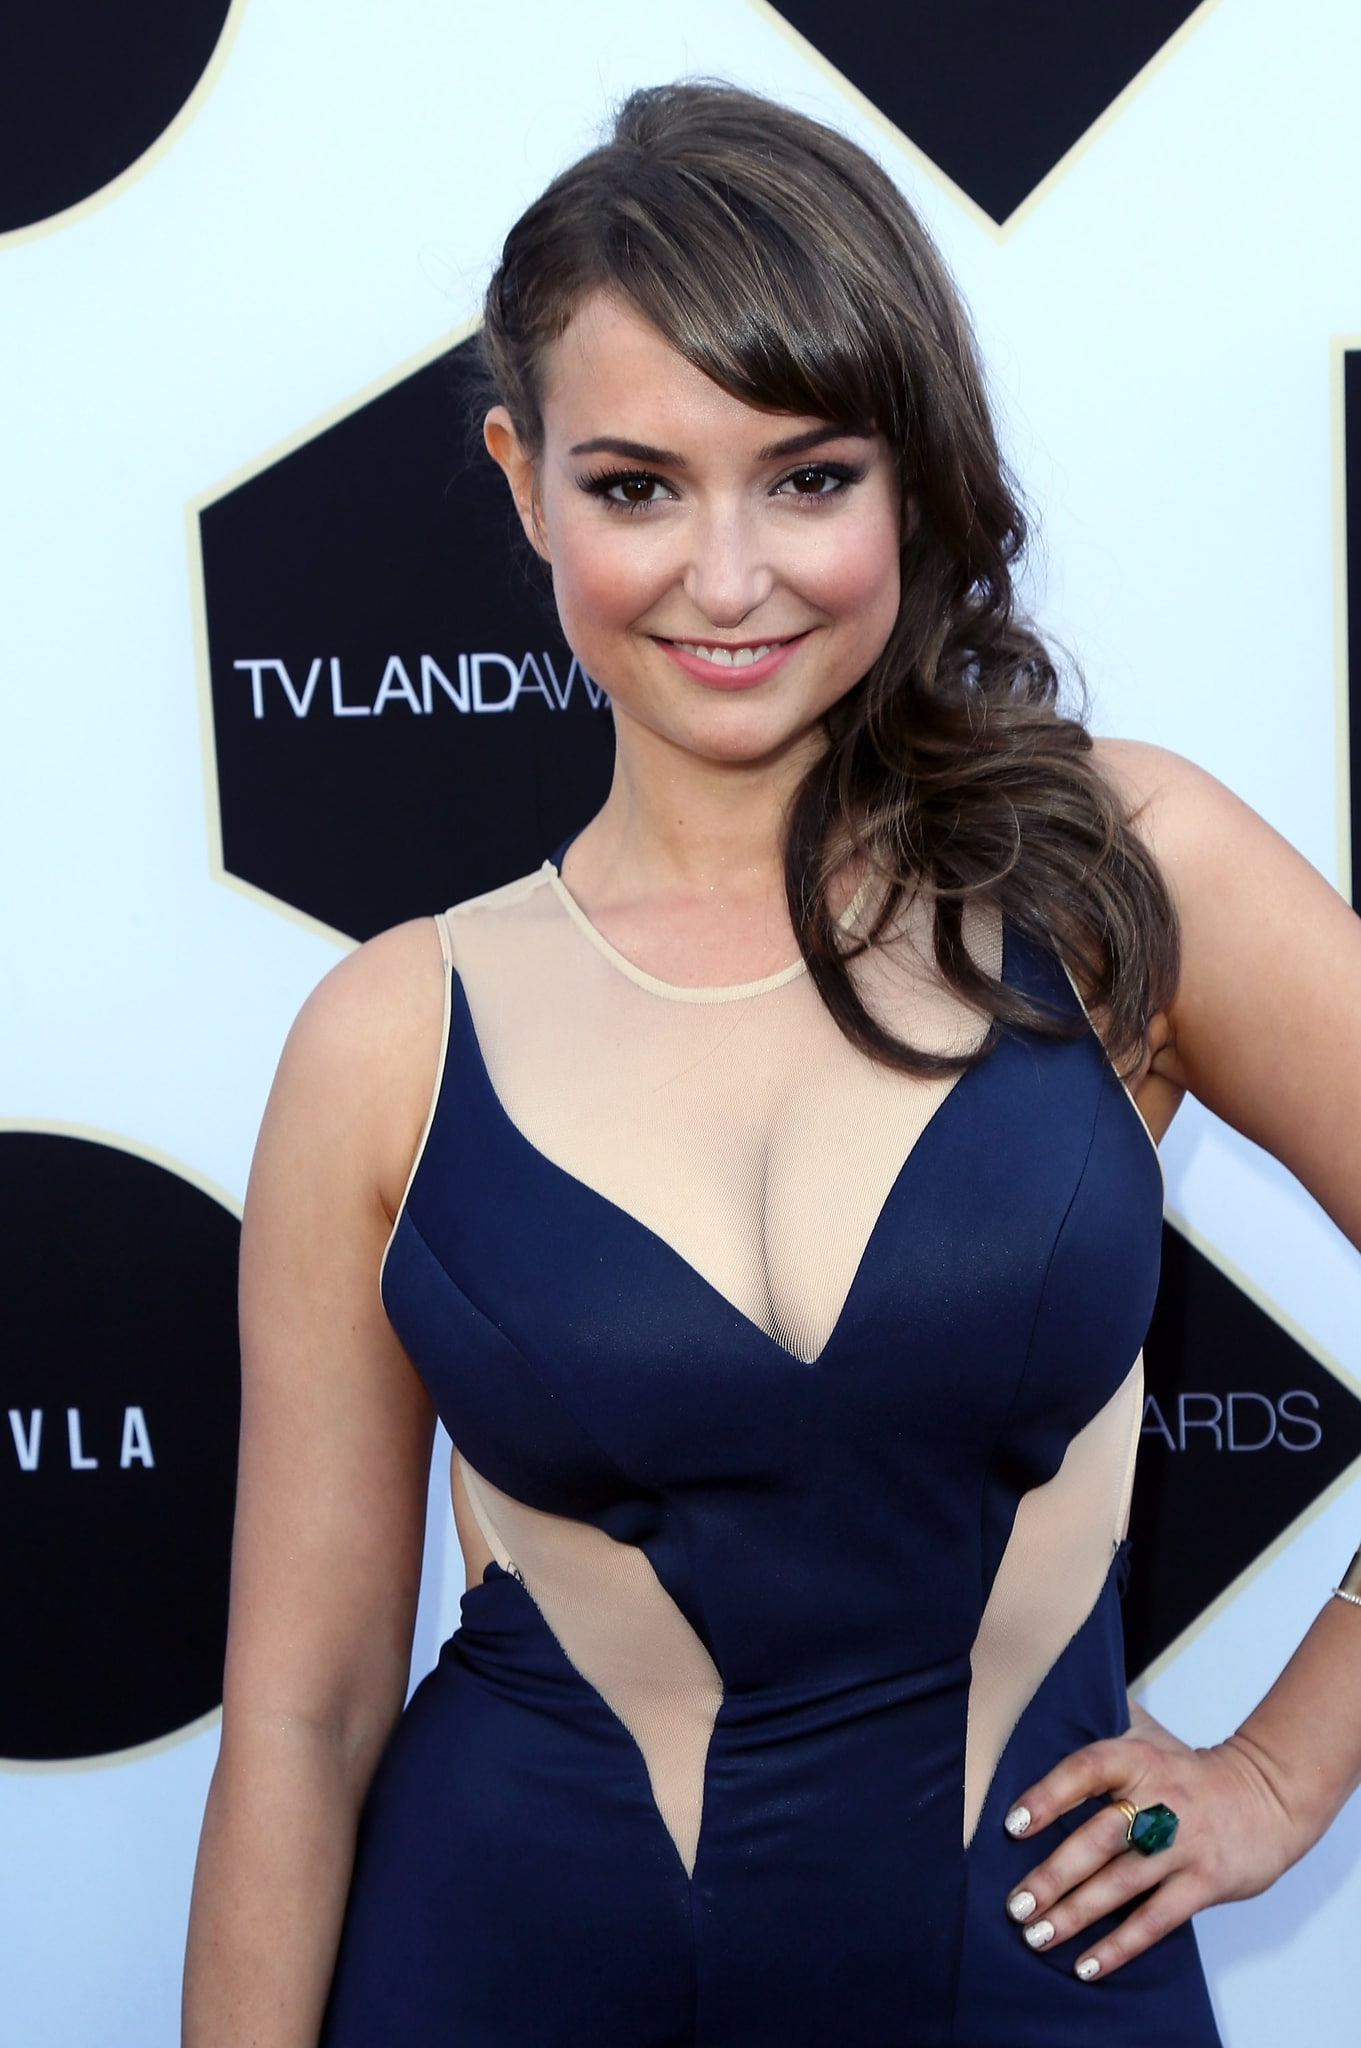 hot cleavage pic of milana vayntrub on the redcarpet